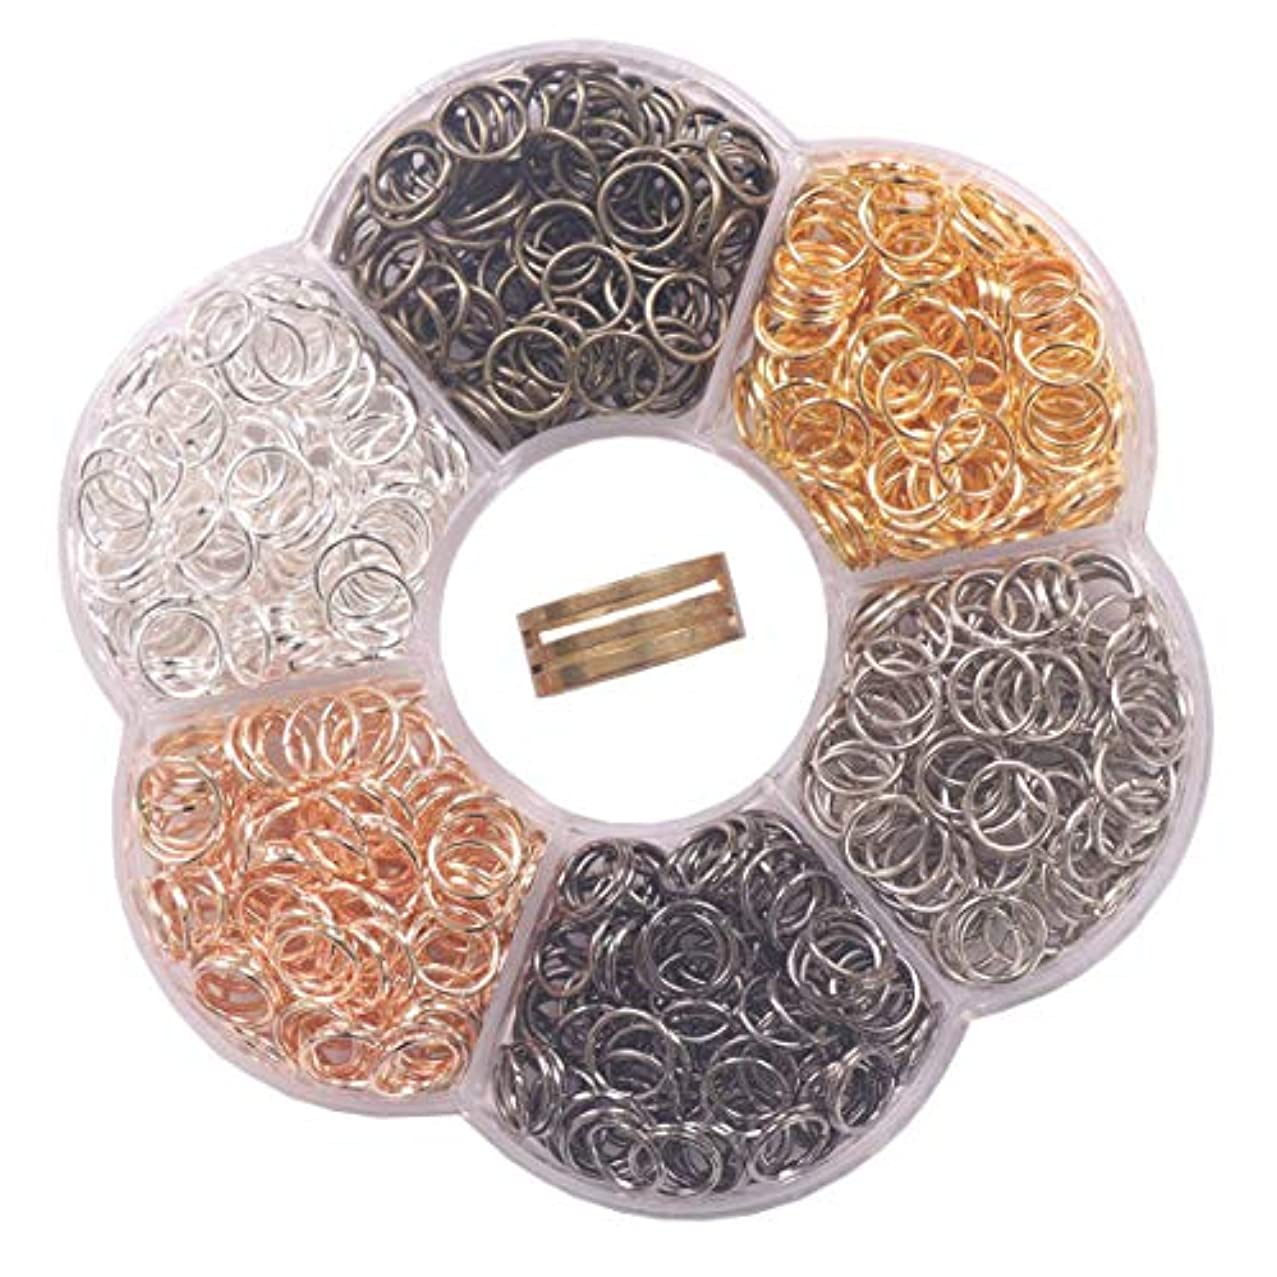 YAKA 1200Pcs 8mm1Box 6 Colors Open Jump Ring,Ring Jewelry Keychain for Jewelry Making Accessories,1Pcc Jump Ring Open/Close Tool and 1Pcs Clear Box (0.31